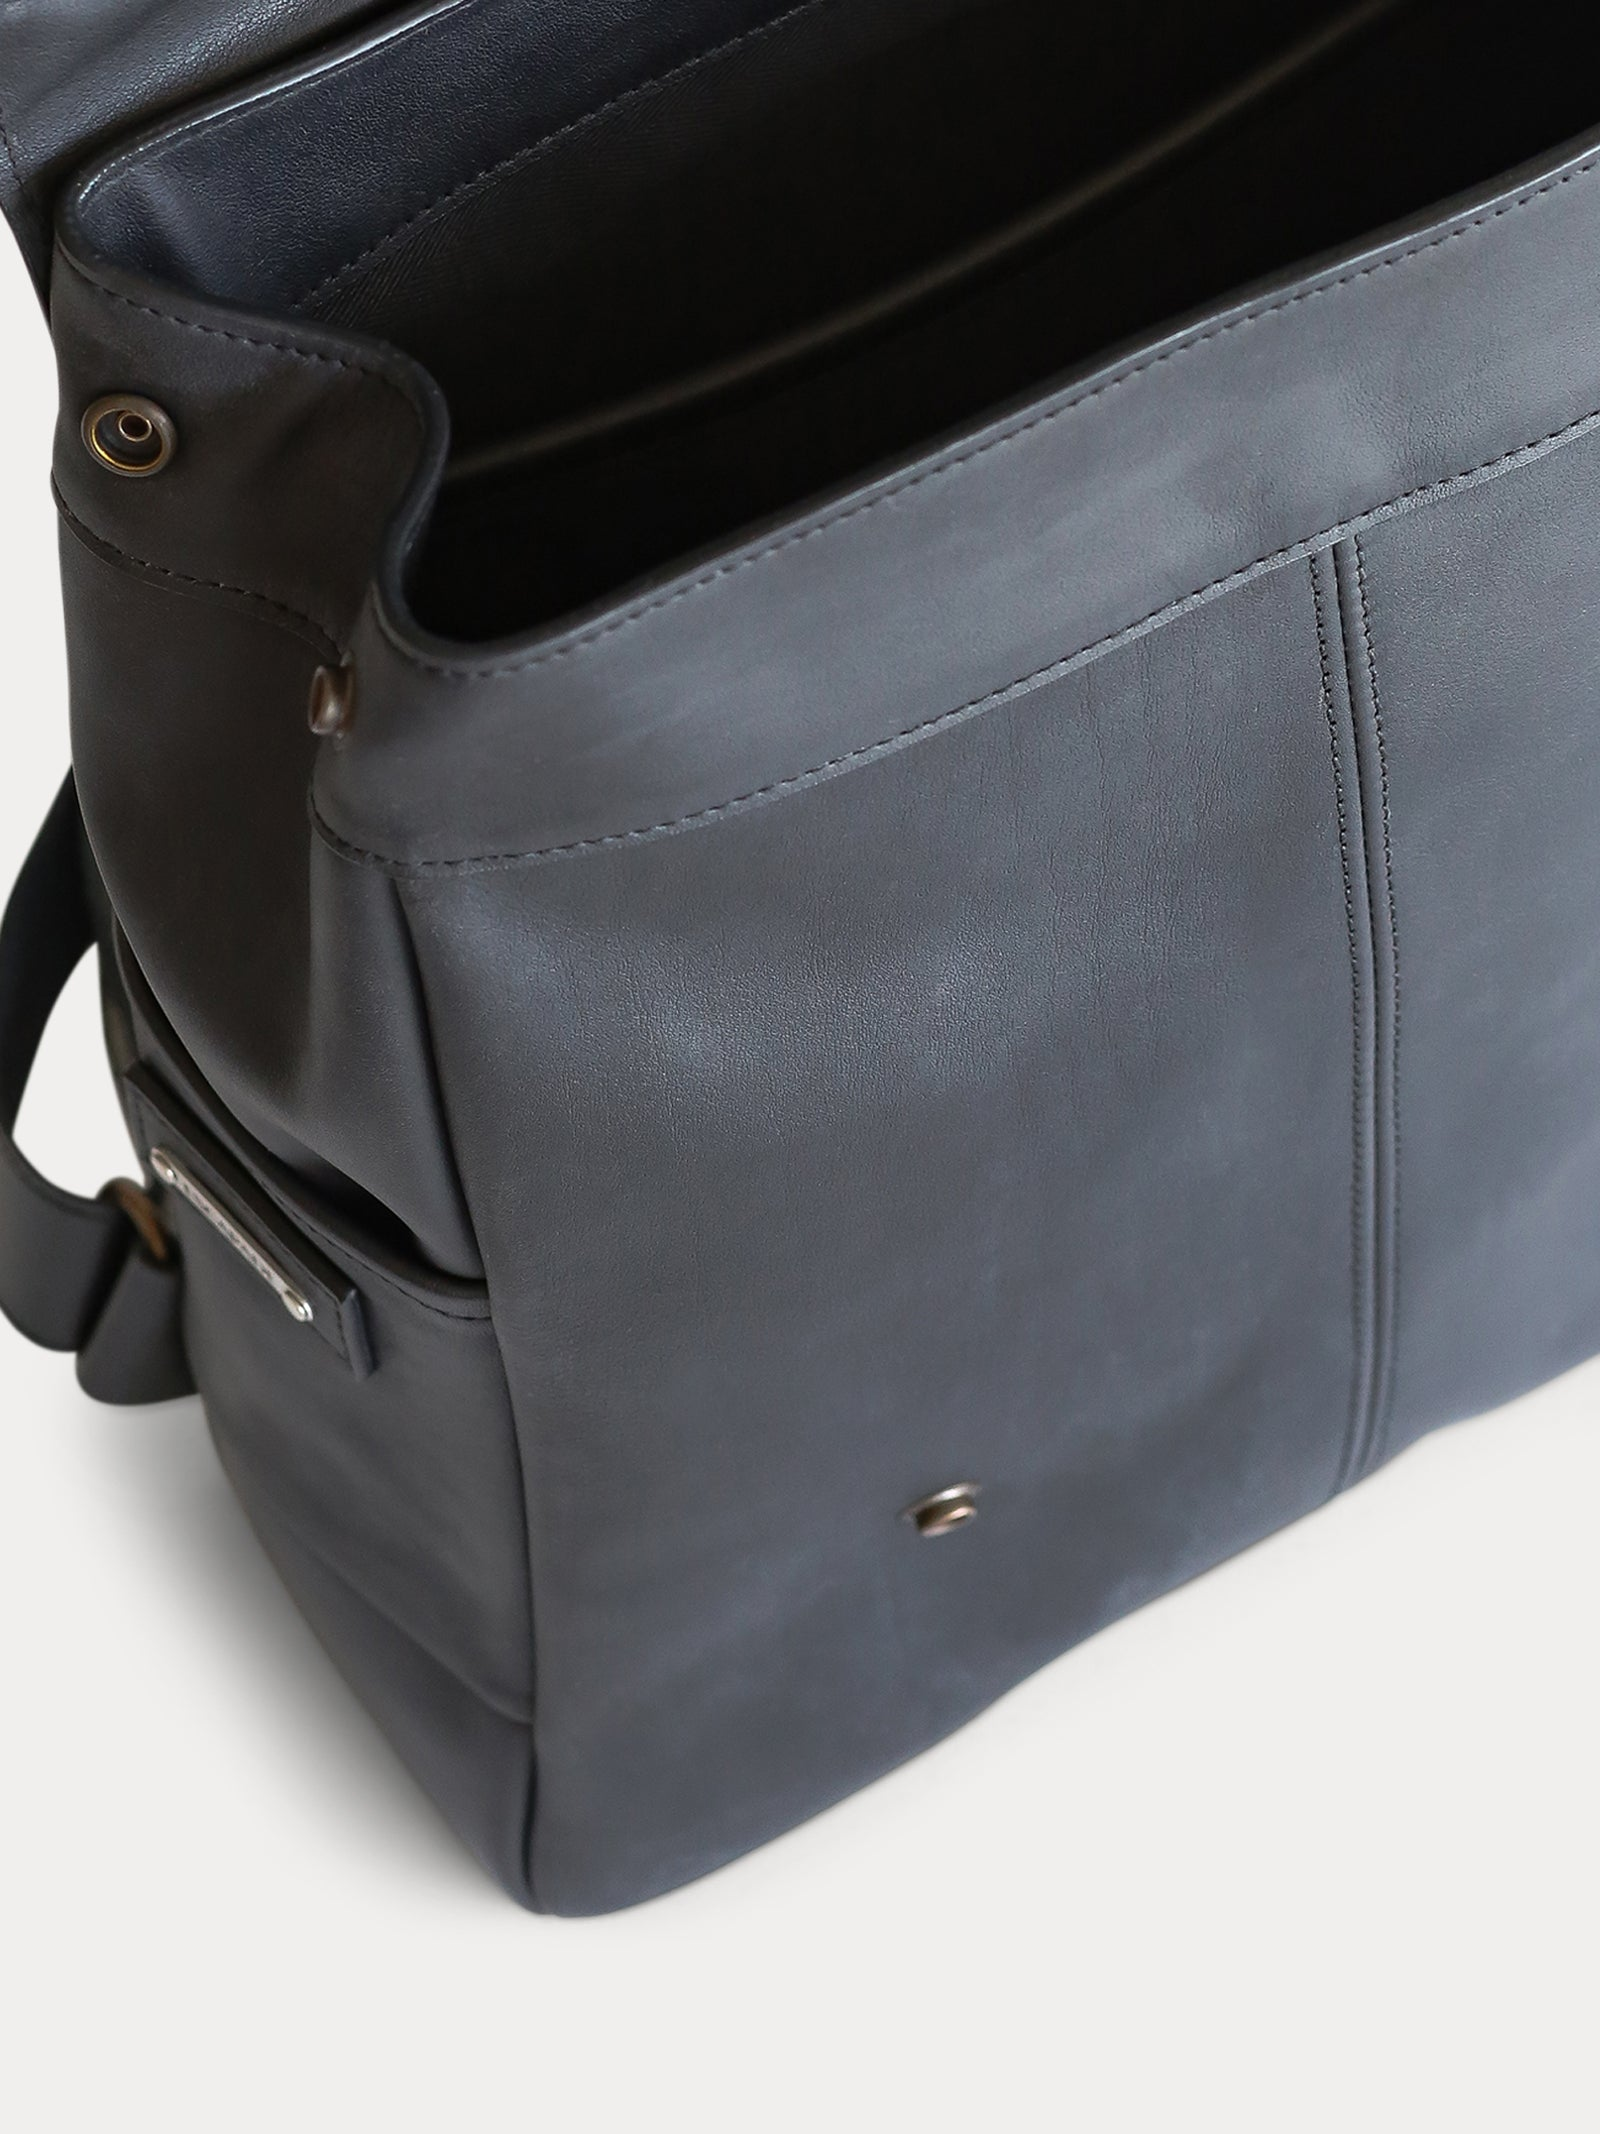 interior black full grain leather backpack